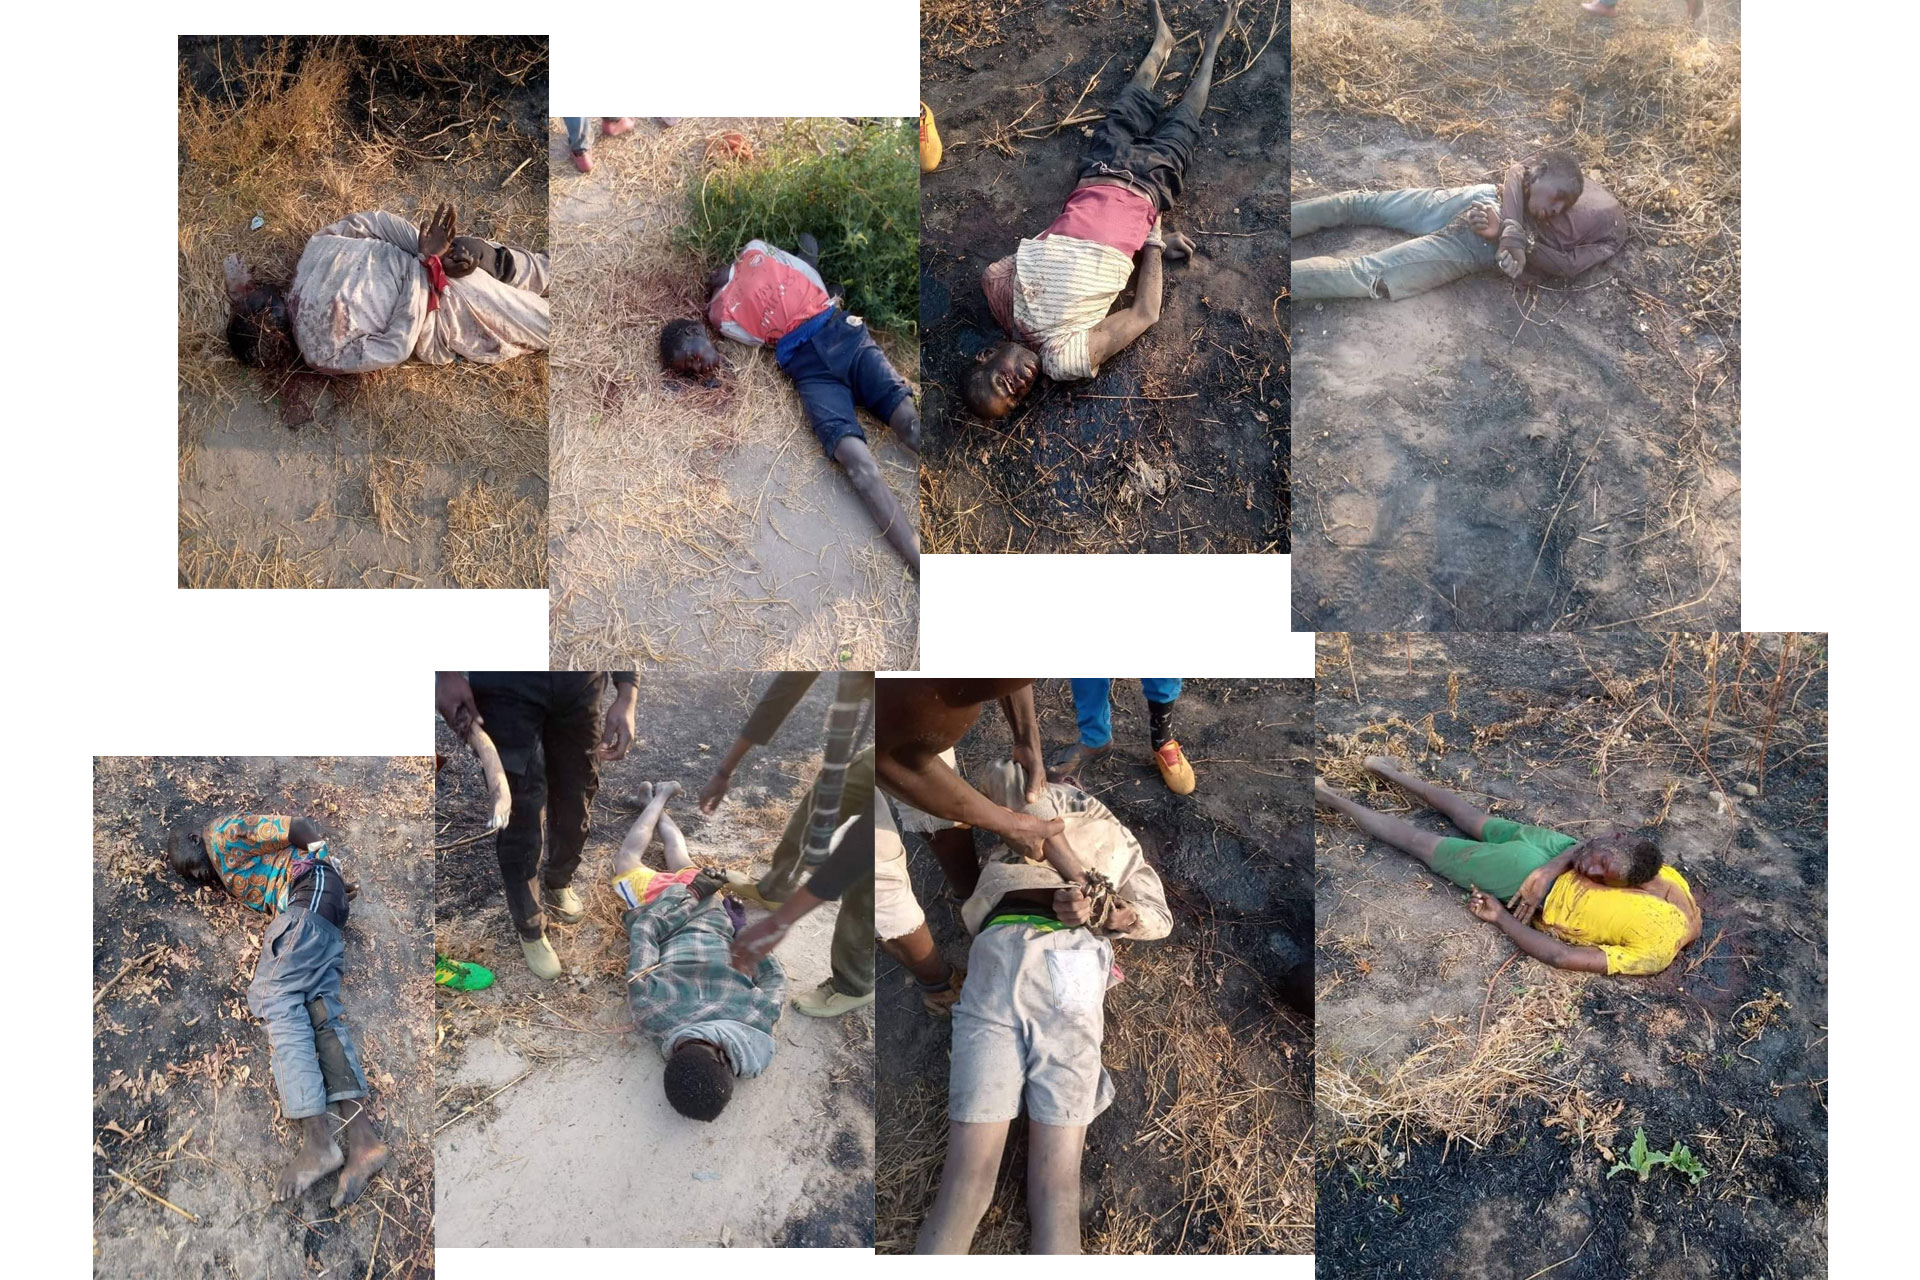 Rice Farmers Beheaded By Boko Haram In Borno State Nigeria, GRAPHIC PHOTOS